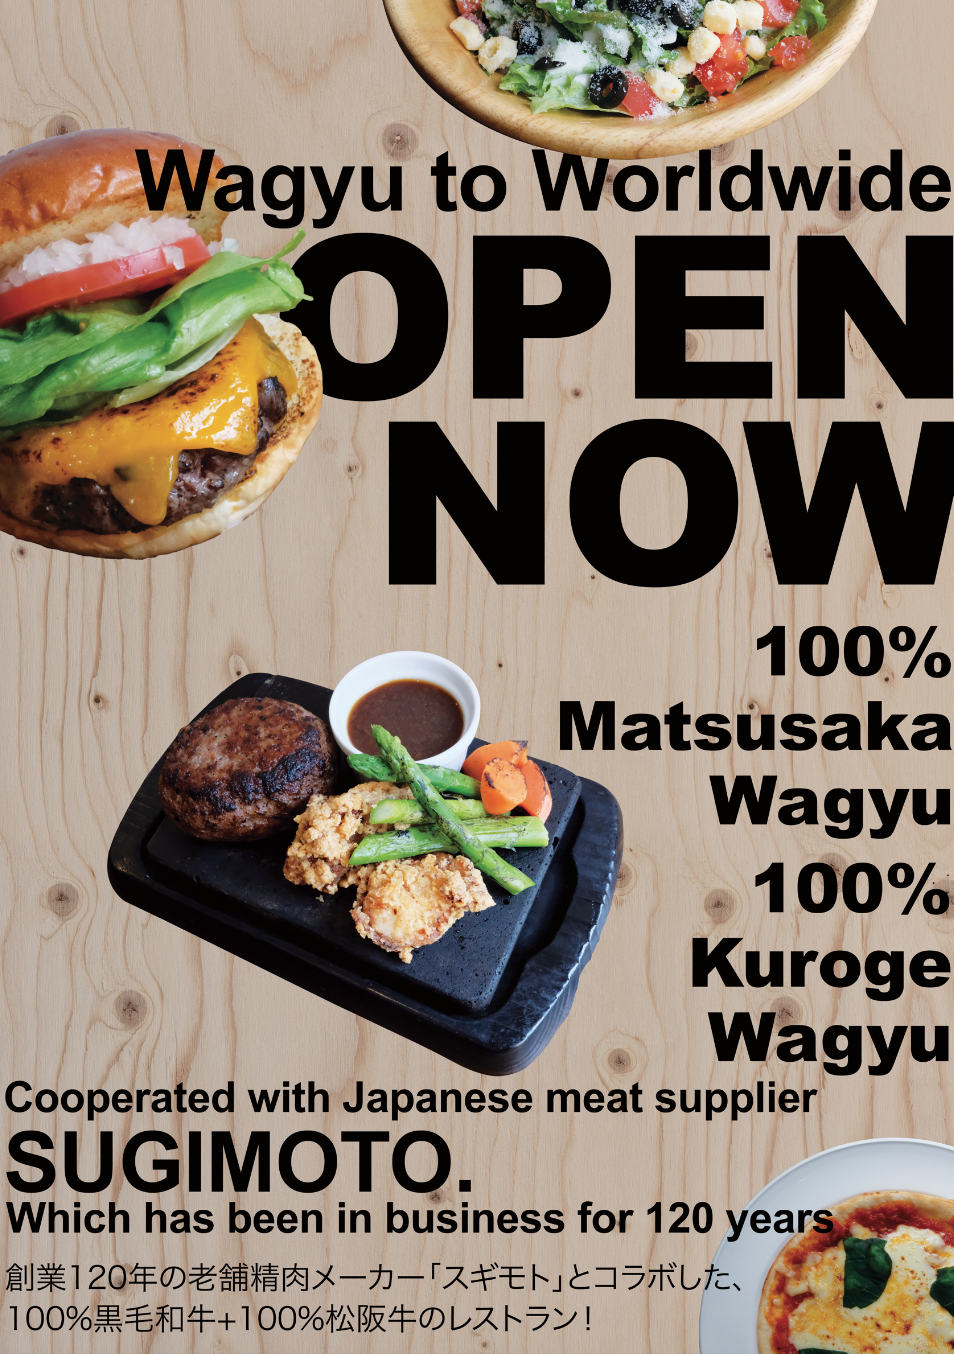 Wagyu to Worldwide new open poster